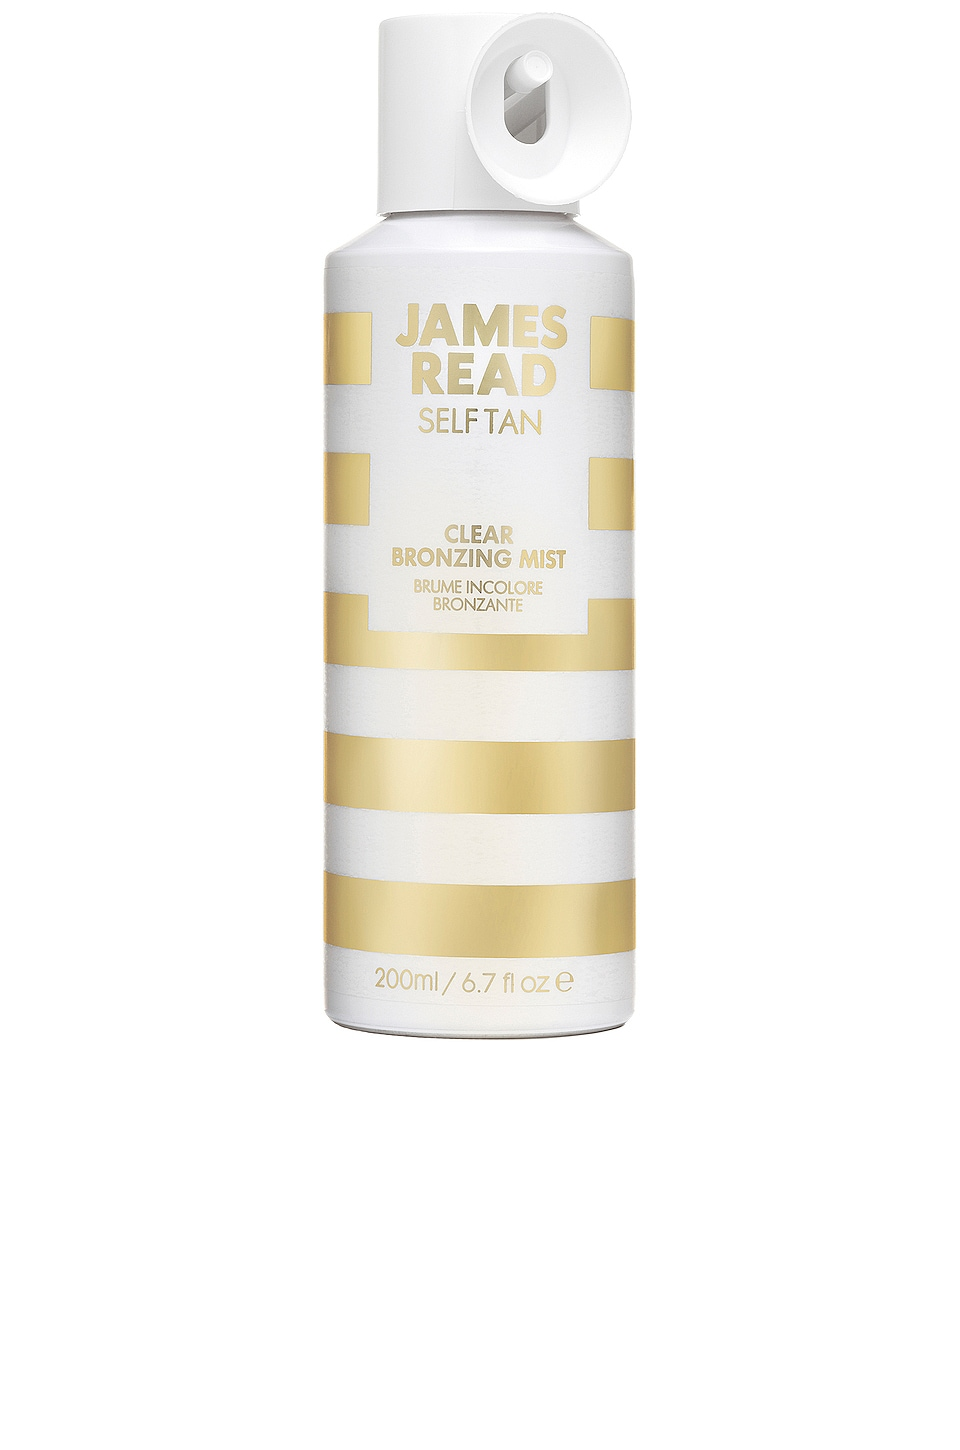 James Read Tan Clear Bronzing Mist